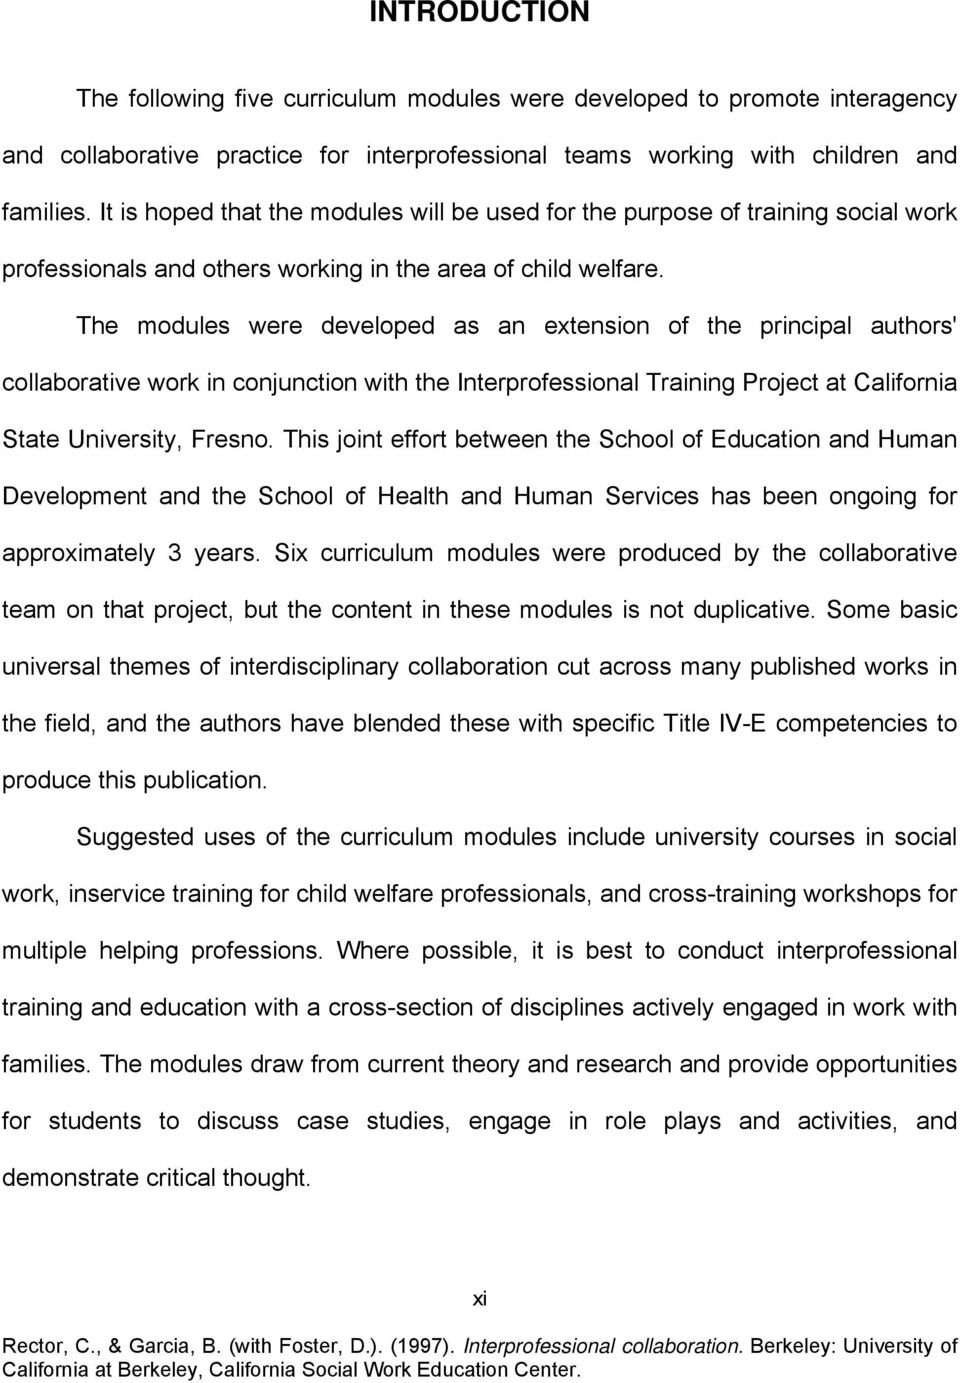 The modules were developed as an extension of the principal authors' collaborative work in conjunction with the Interprofessional Training Project at California State University, Fresno.